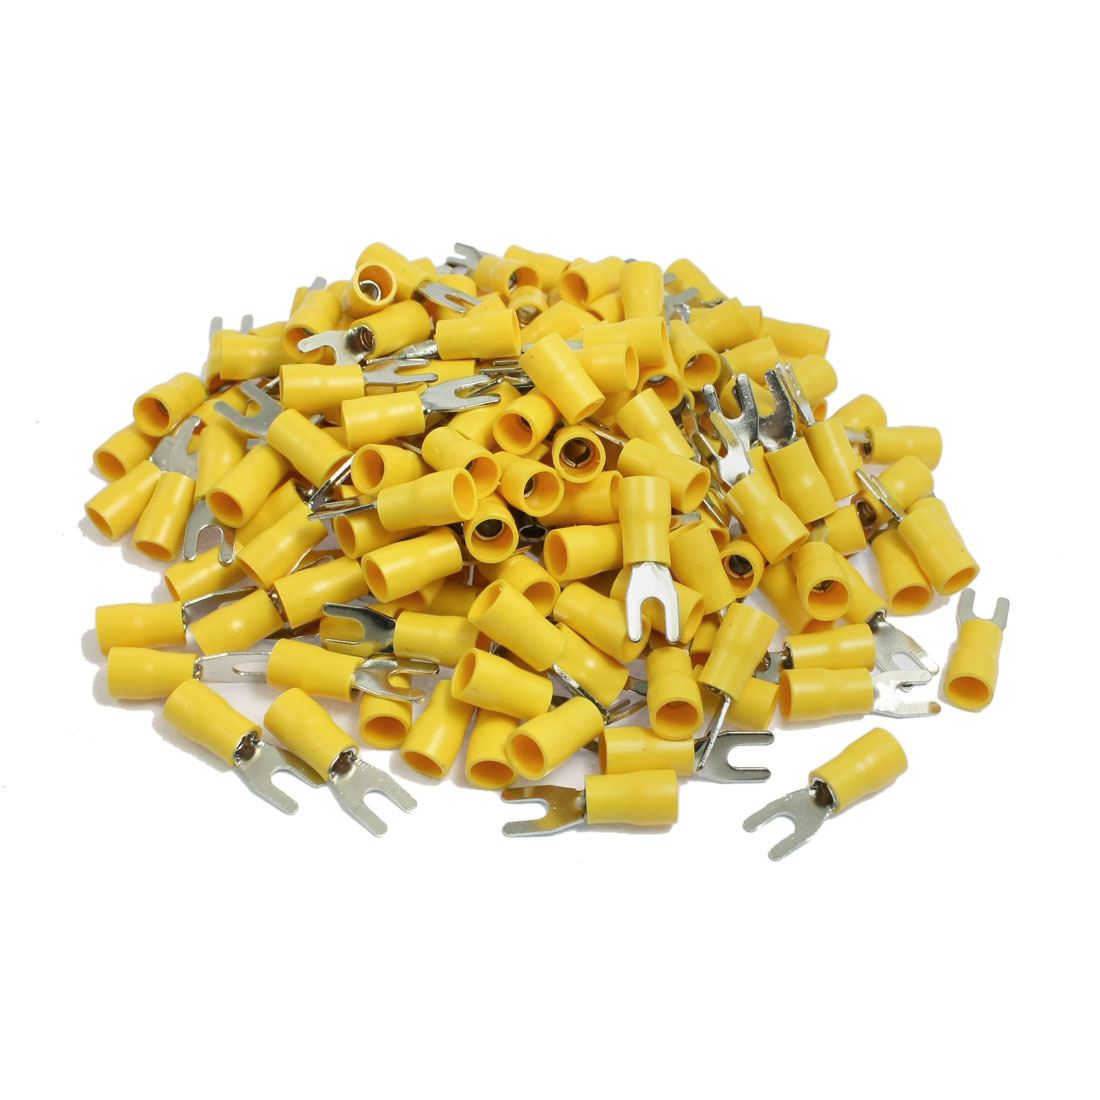 200 x Yellow PVC Insulating Sleeve Furcate Terminals Cable Lugs SV5.5-3.5